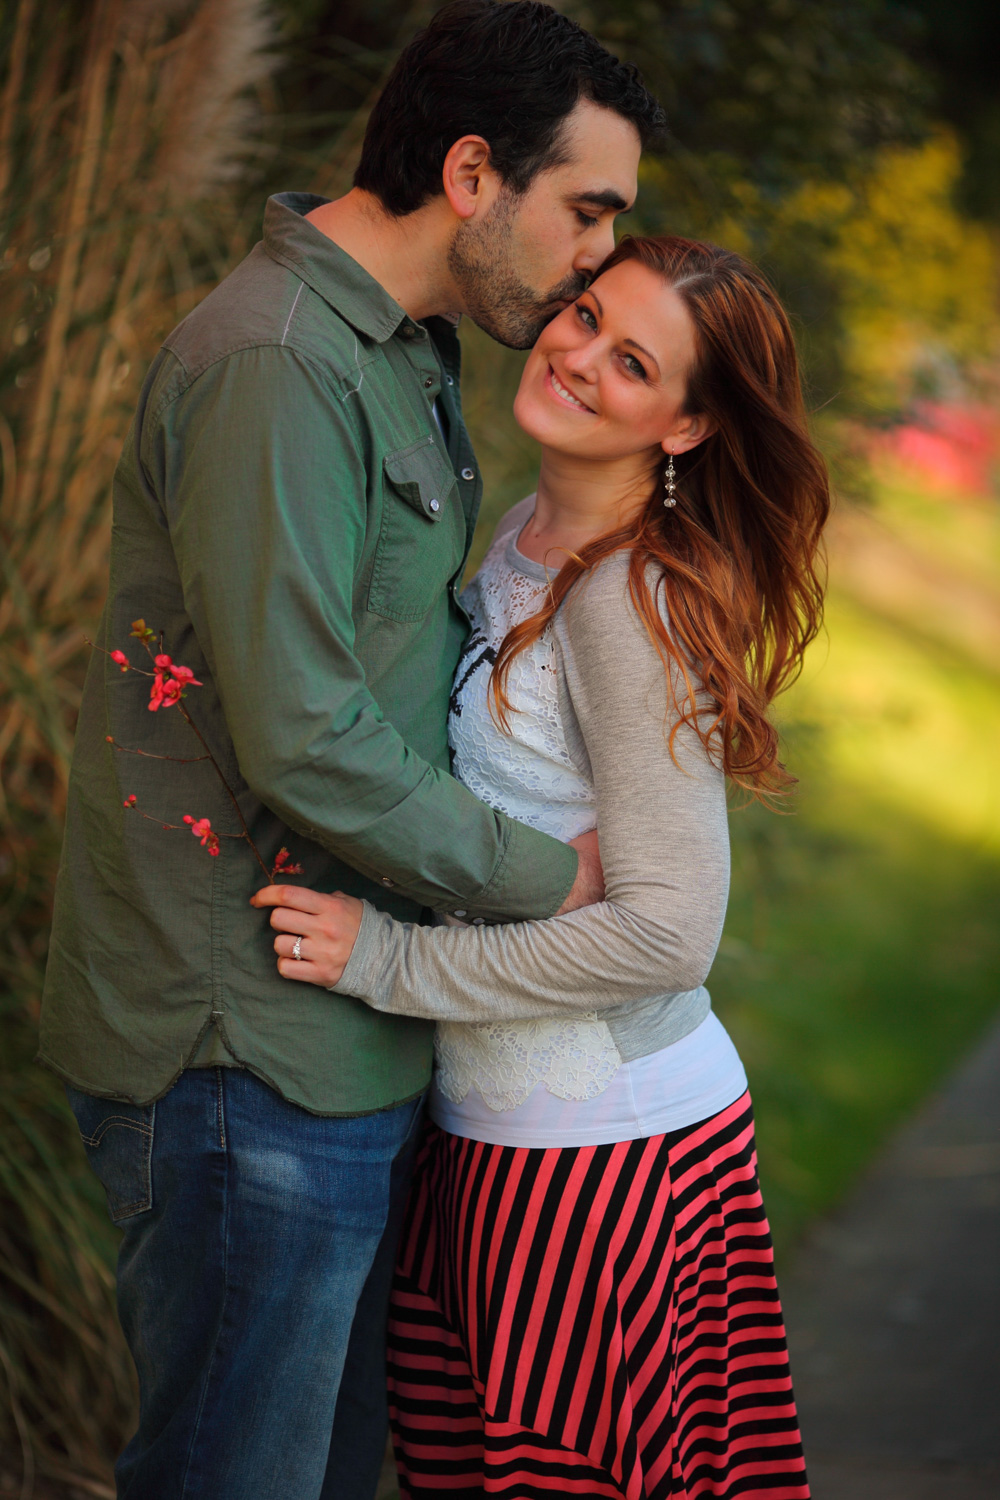 Engagement+Photos+Snohomish+Washington07.jpg